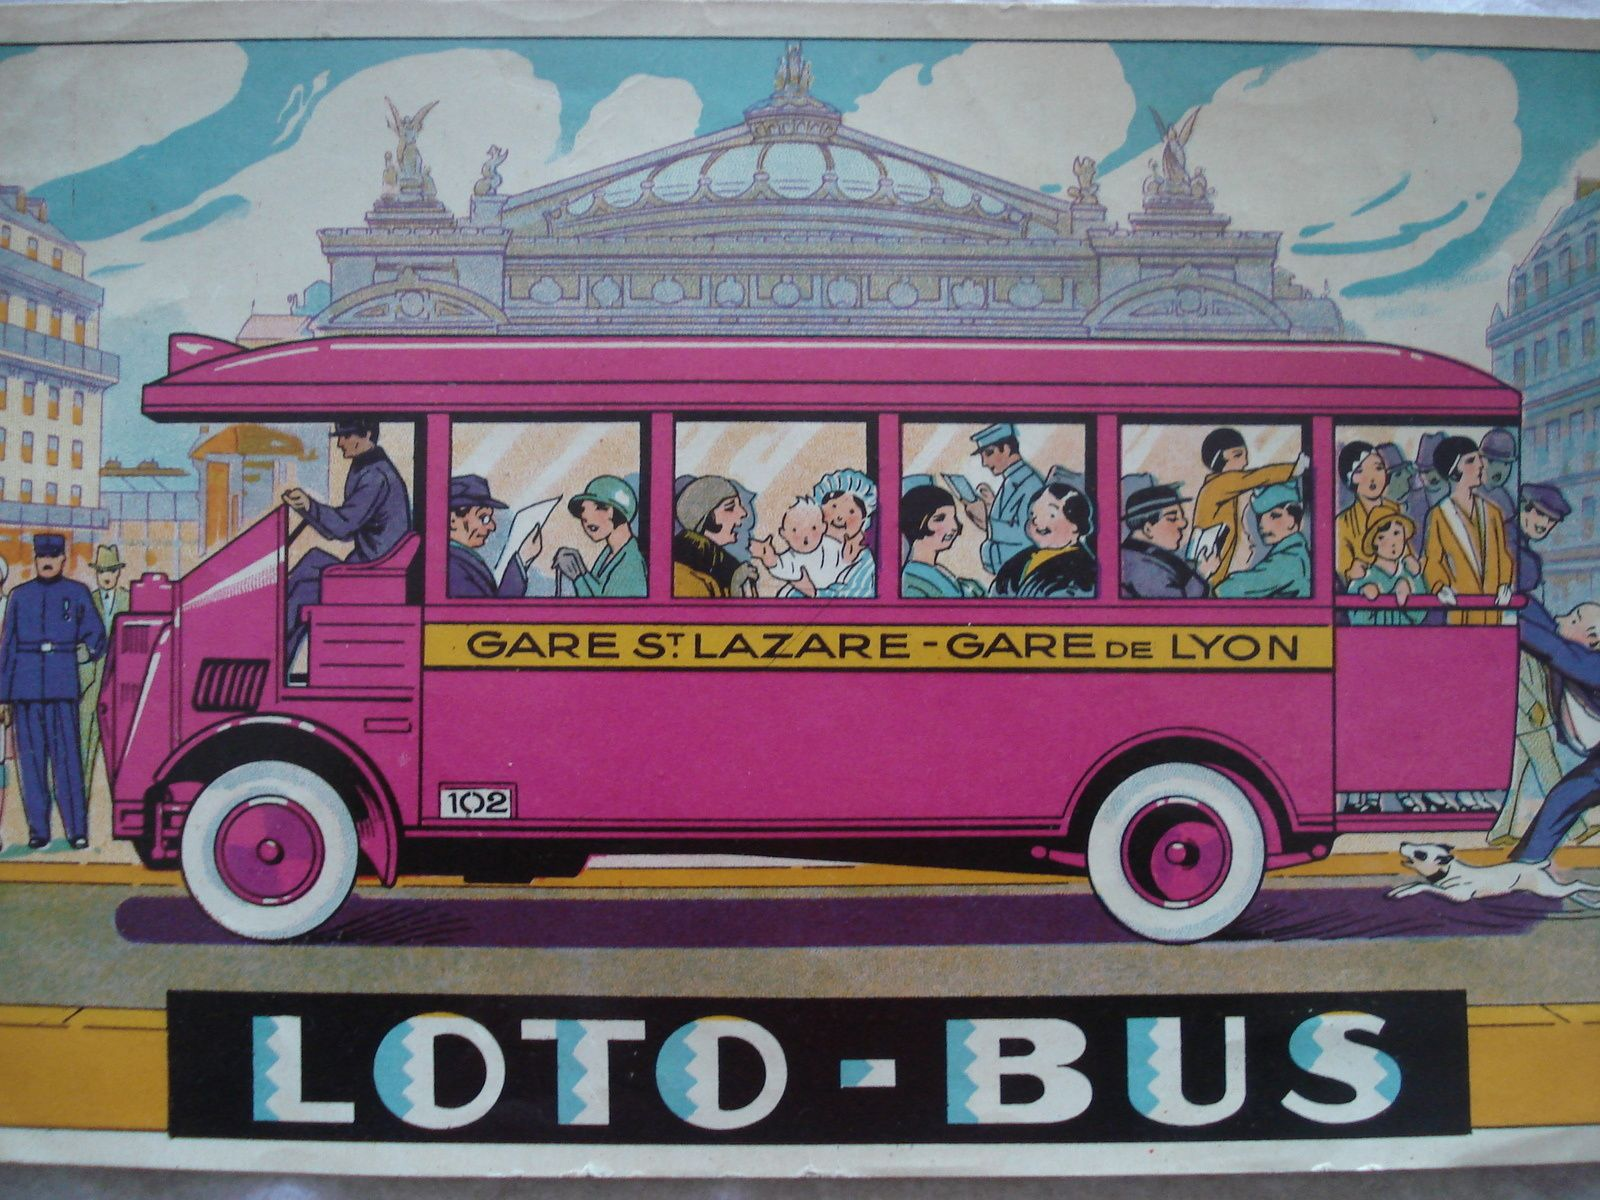 LOTOS BUS - TRAINS